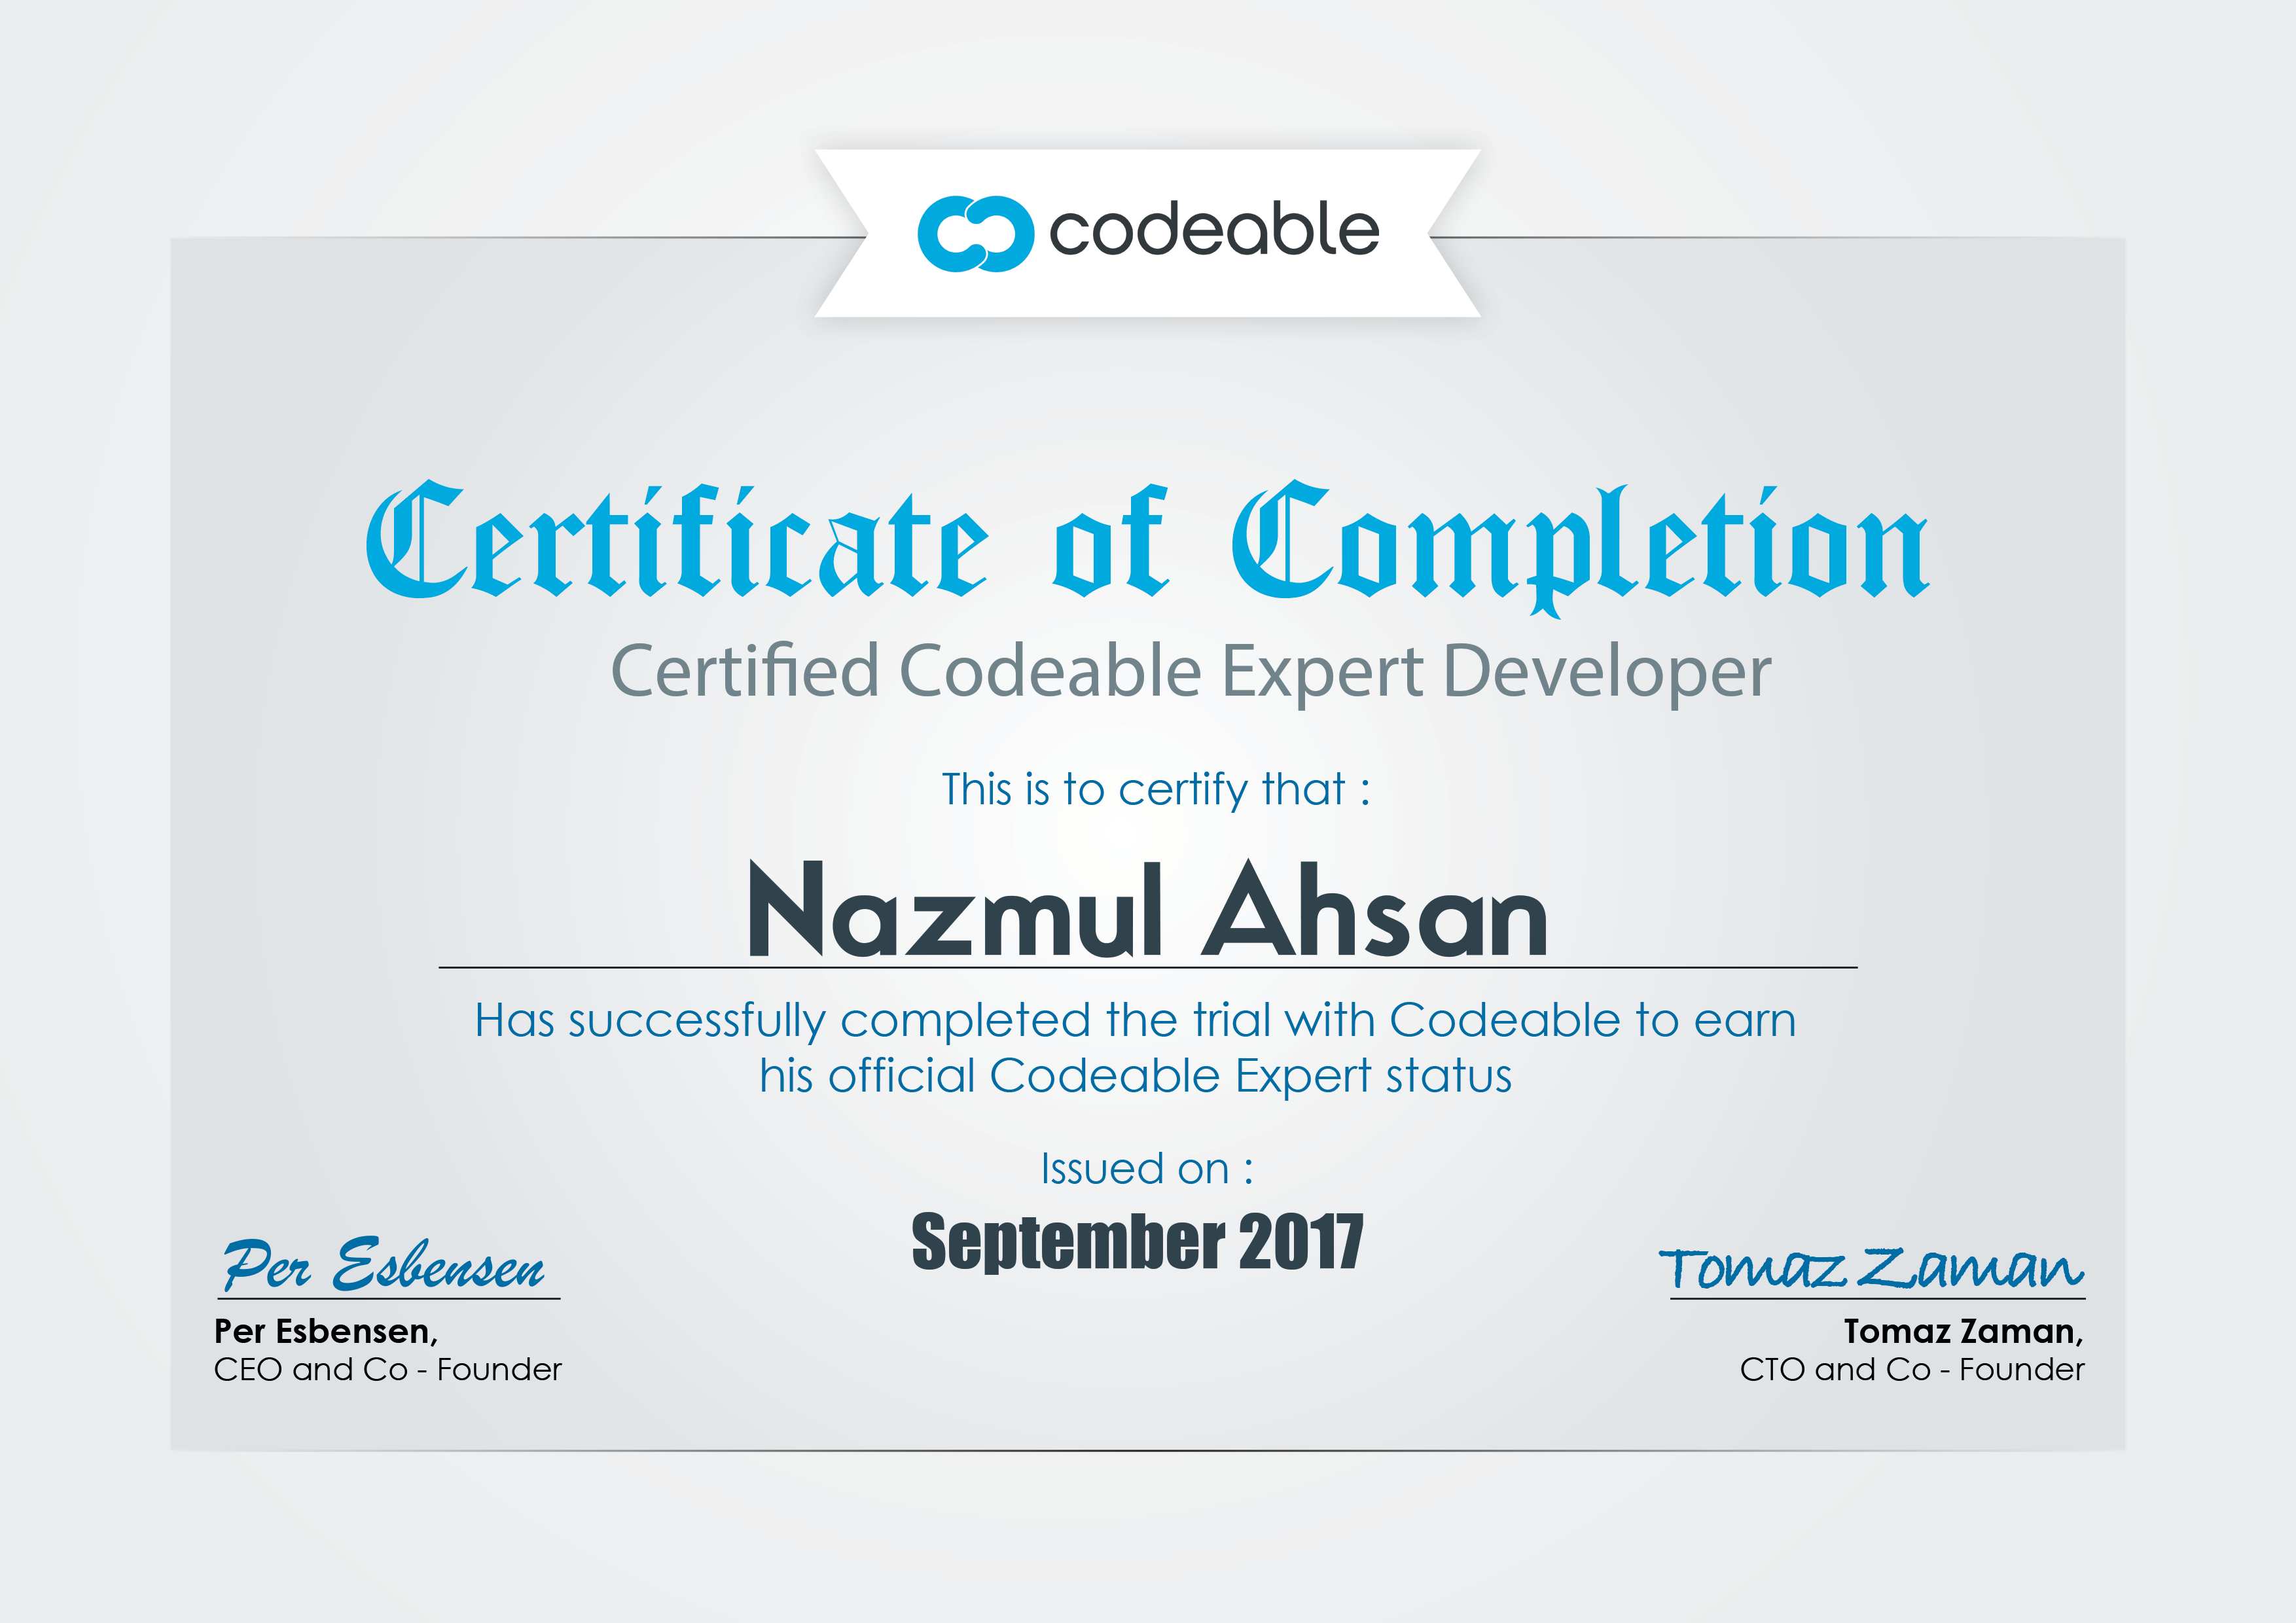 Certificate of Codeable for Nazmul Ahsan